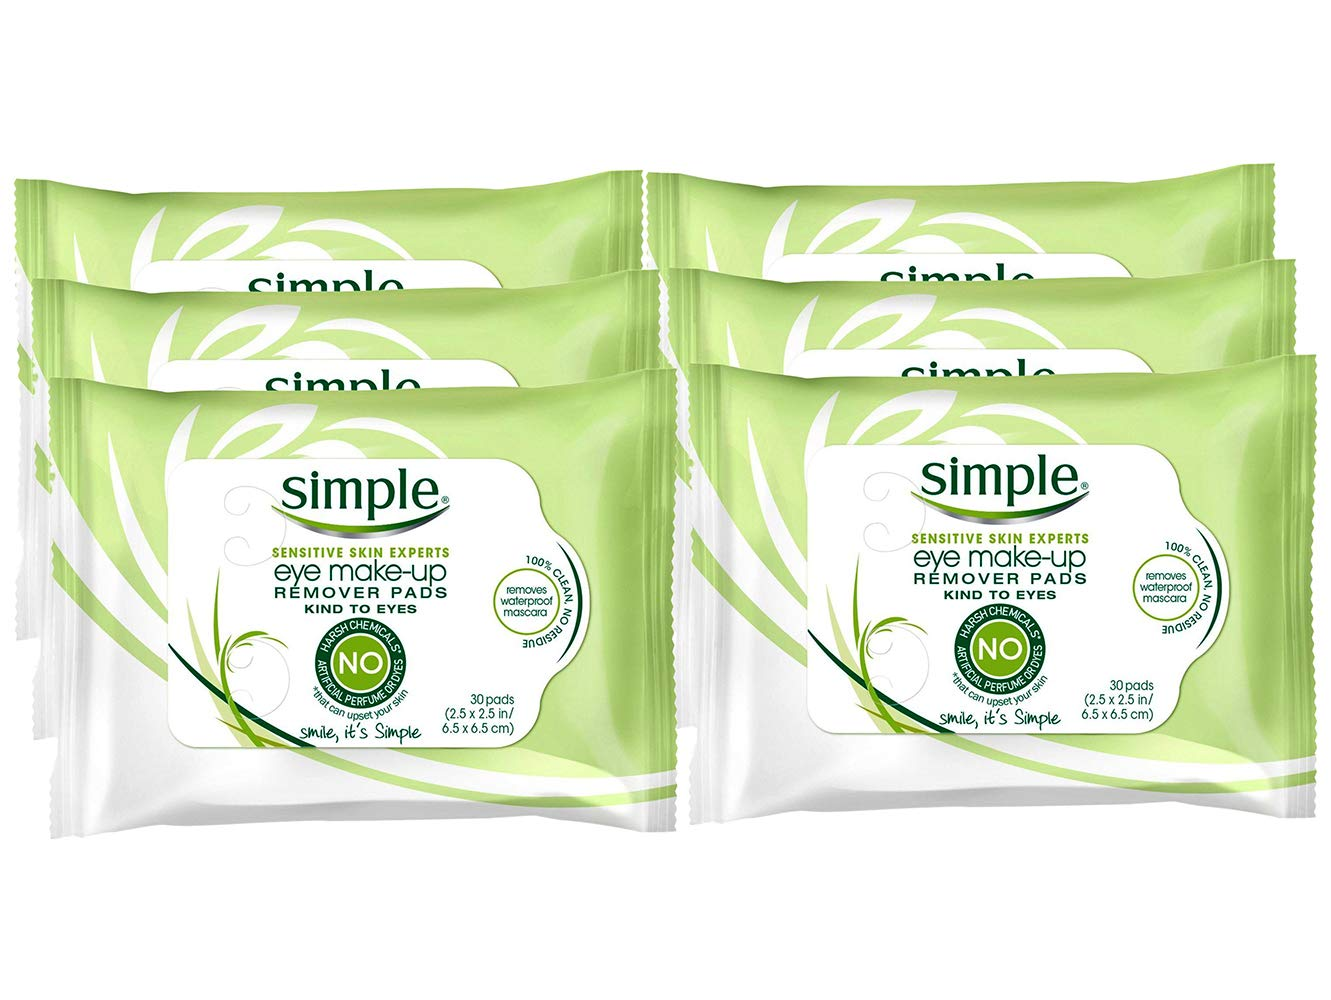 Simple Sensitive Skin Kind To Eyes Make-Up Remover Pads, 30 Count (Pack of 6)